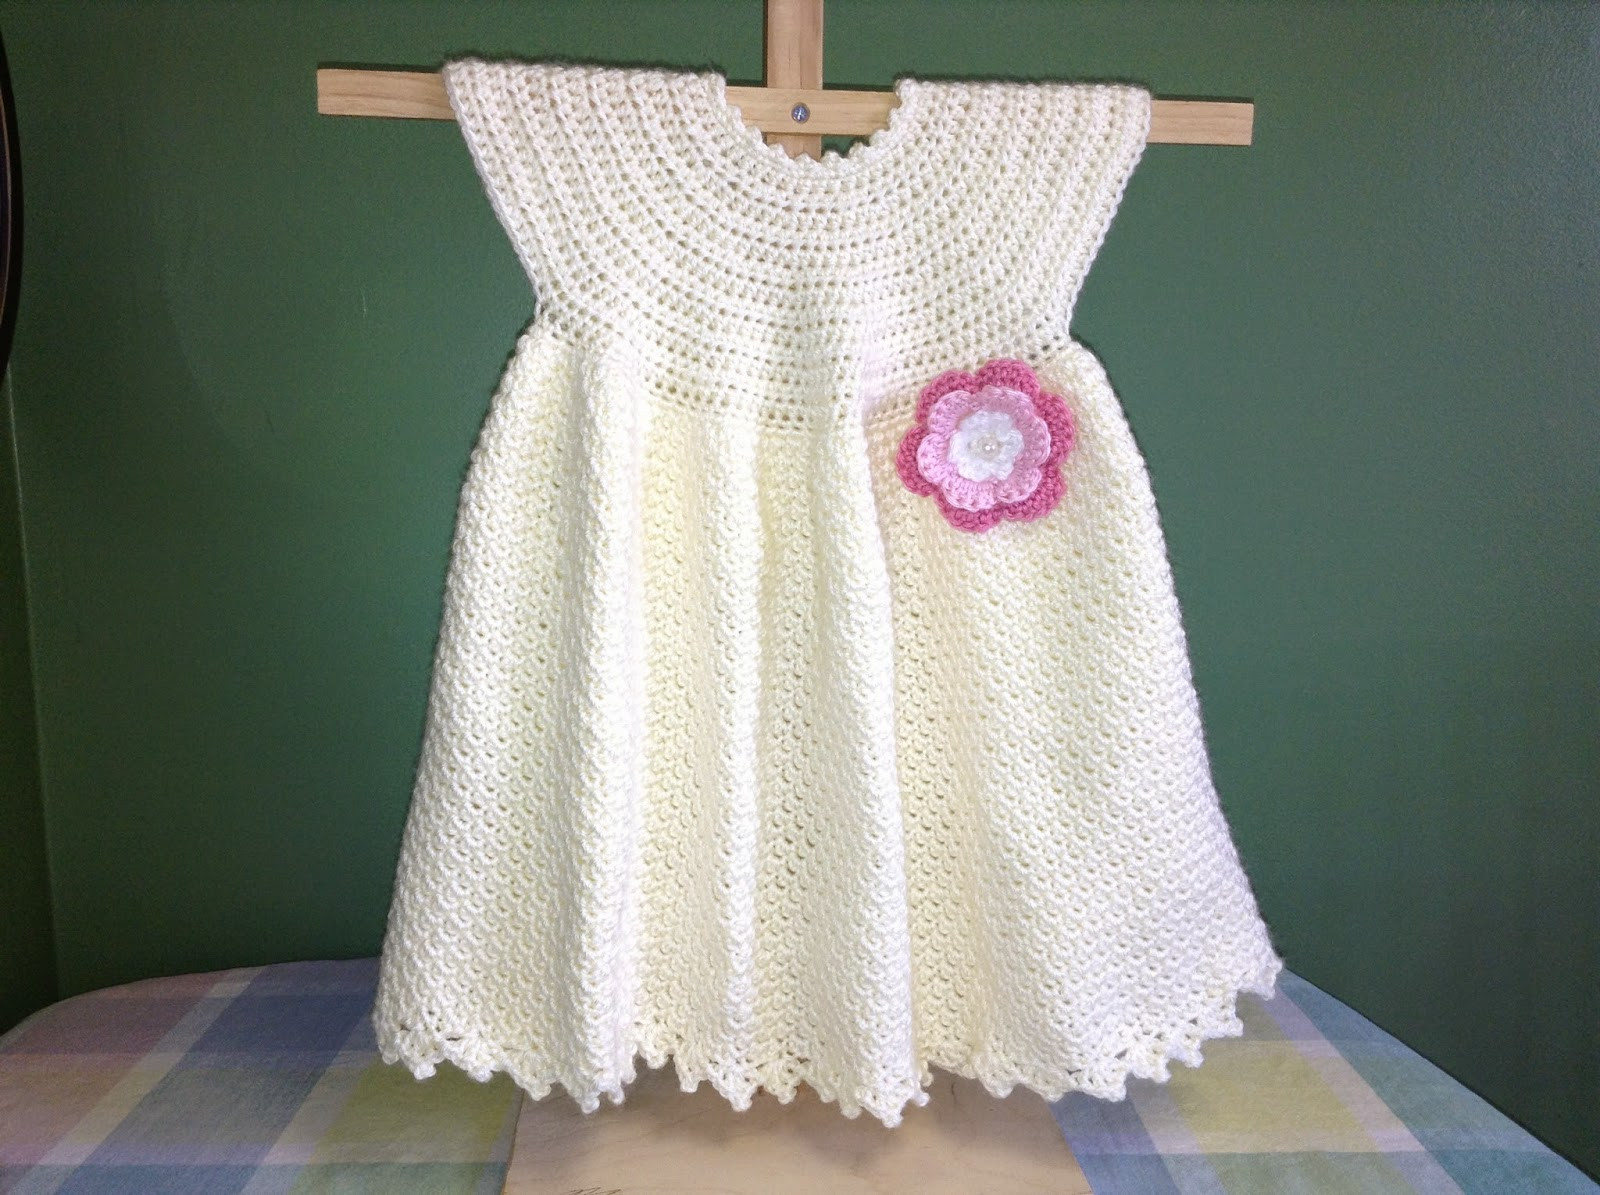 Crochet toddler Dresses Best Of Anna S Free Baby Crochet Dress Patterns Inspiration and Of Amazing 50 Images Crochet toddler Dresses